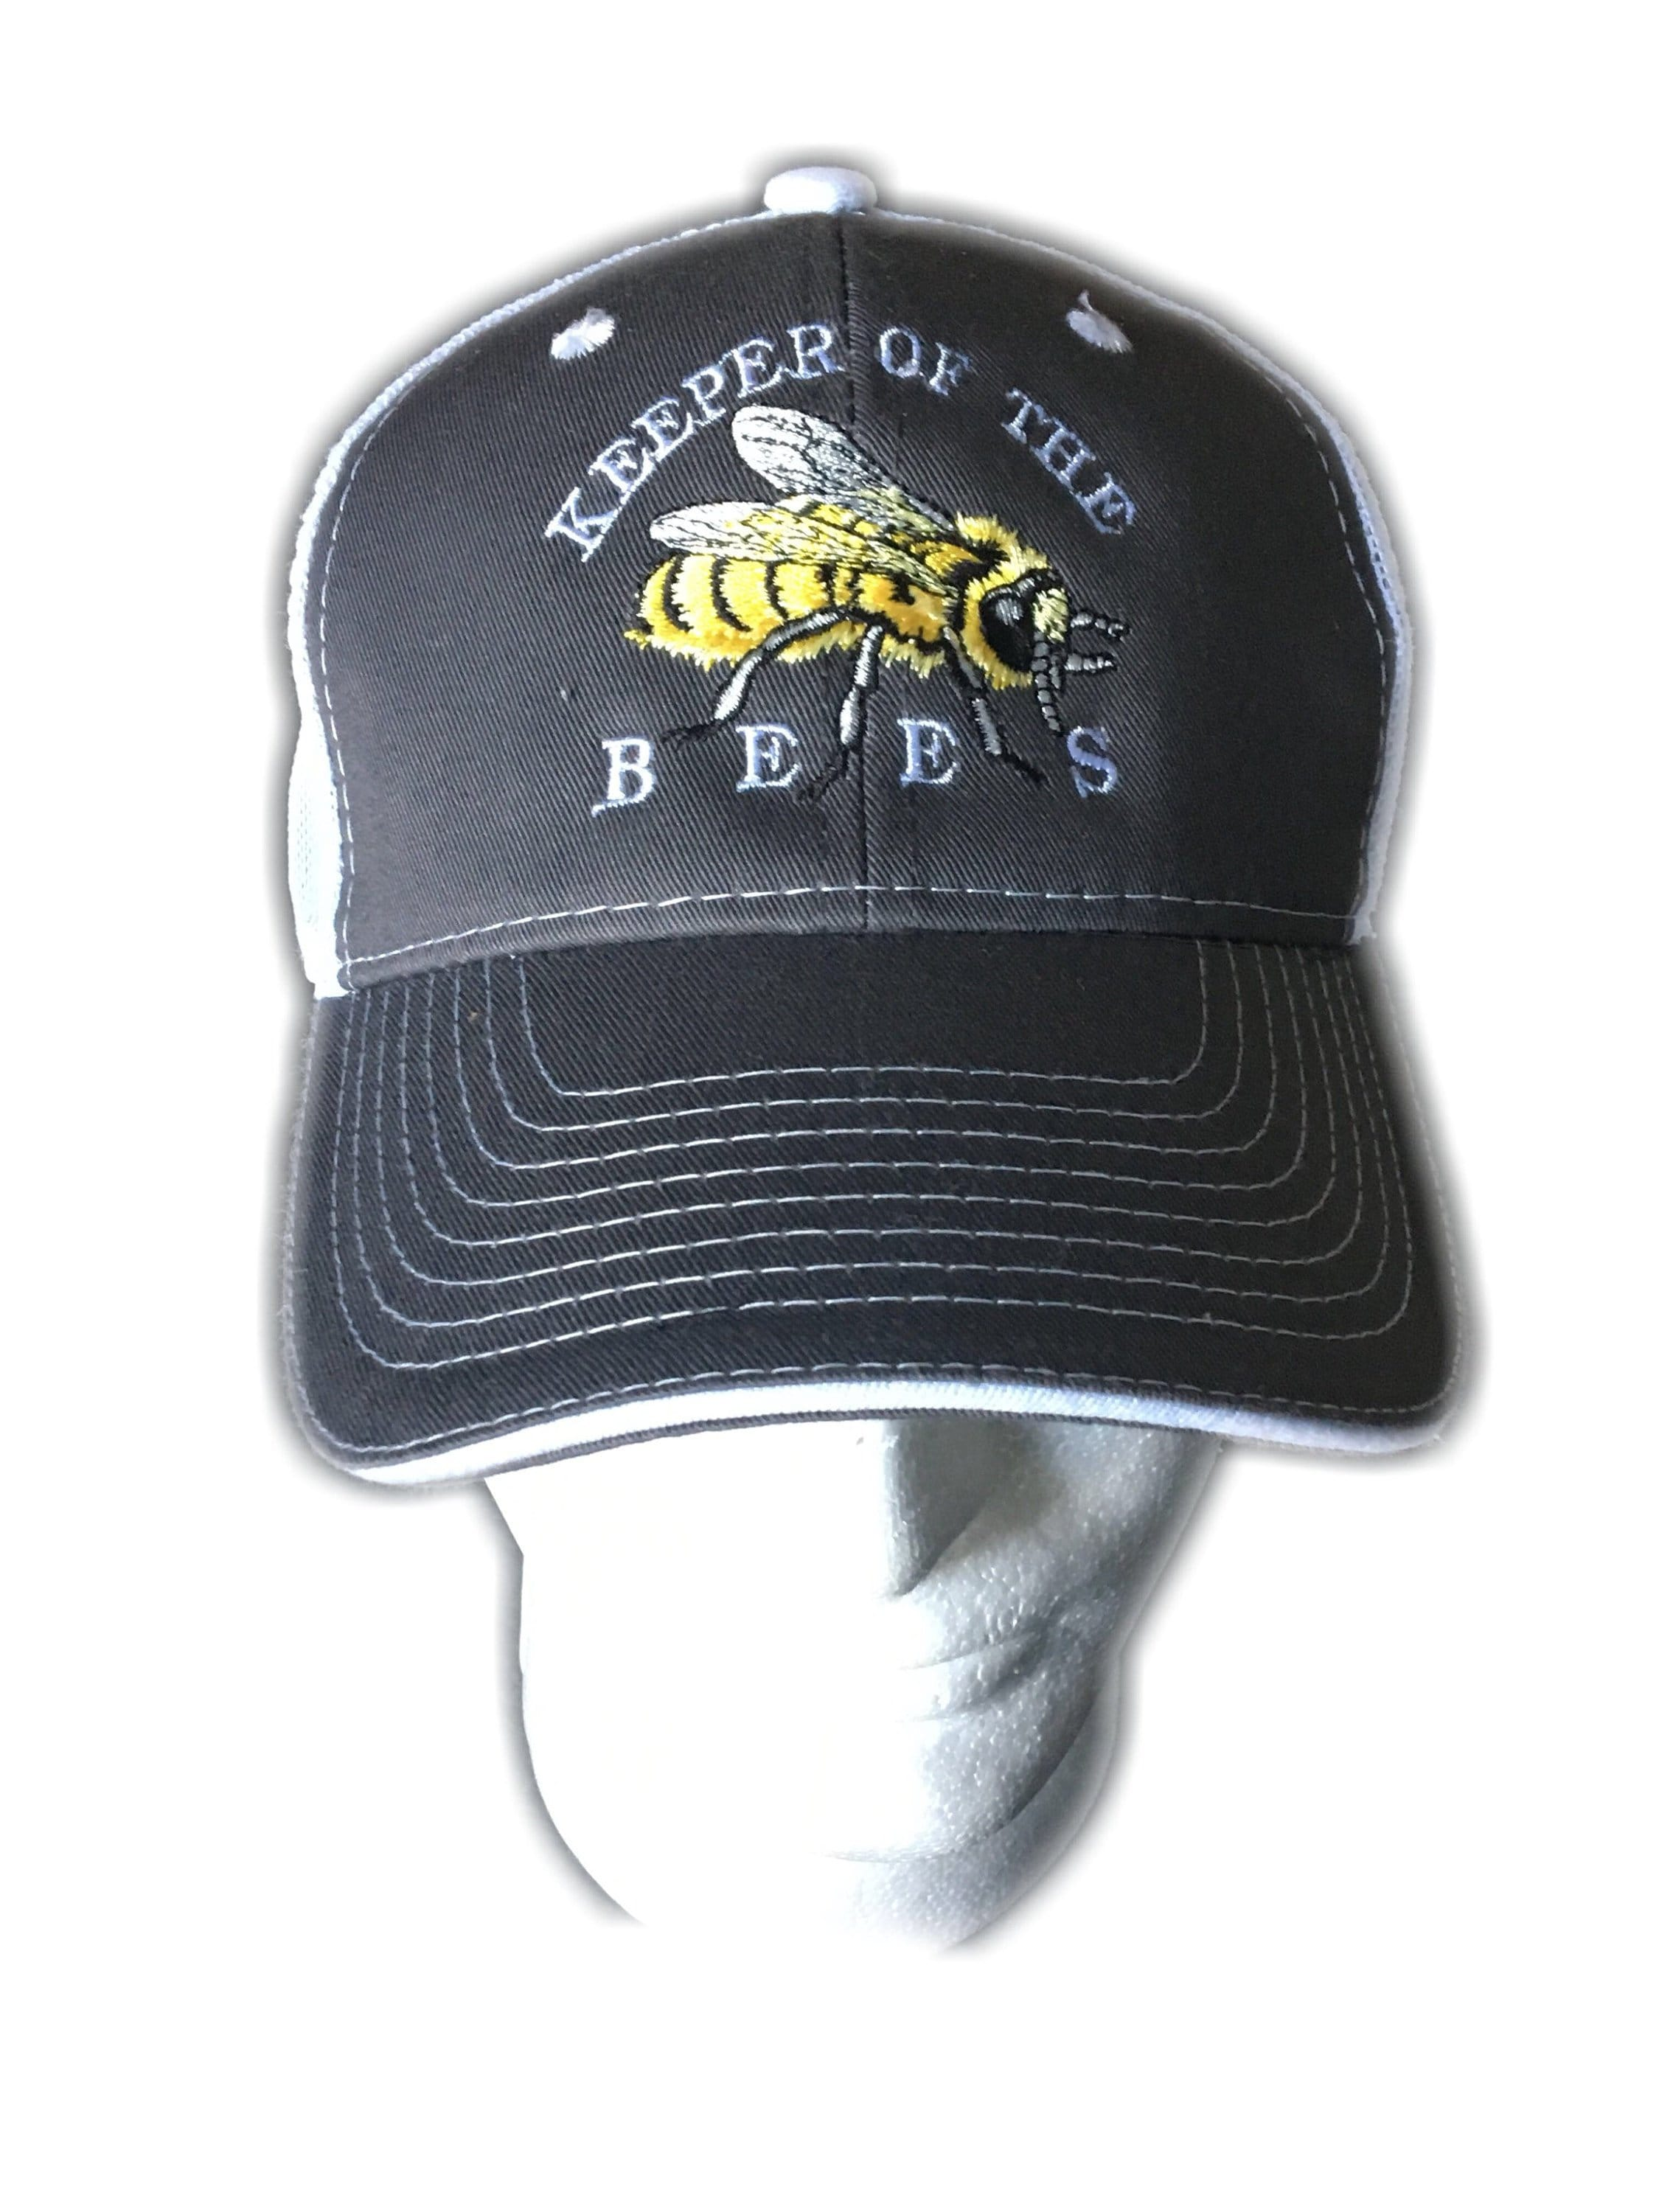 Keeper of the Bees Vented Baseball Cap Cool Gift Awesome  57f2ebdc524